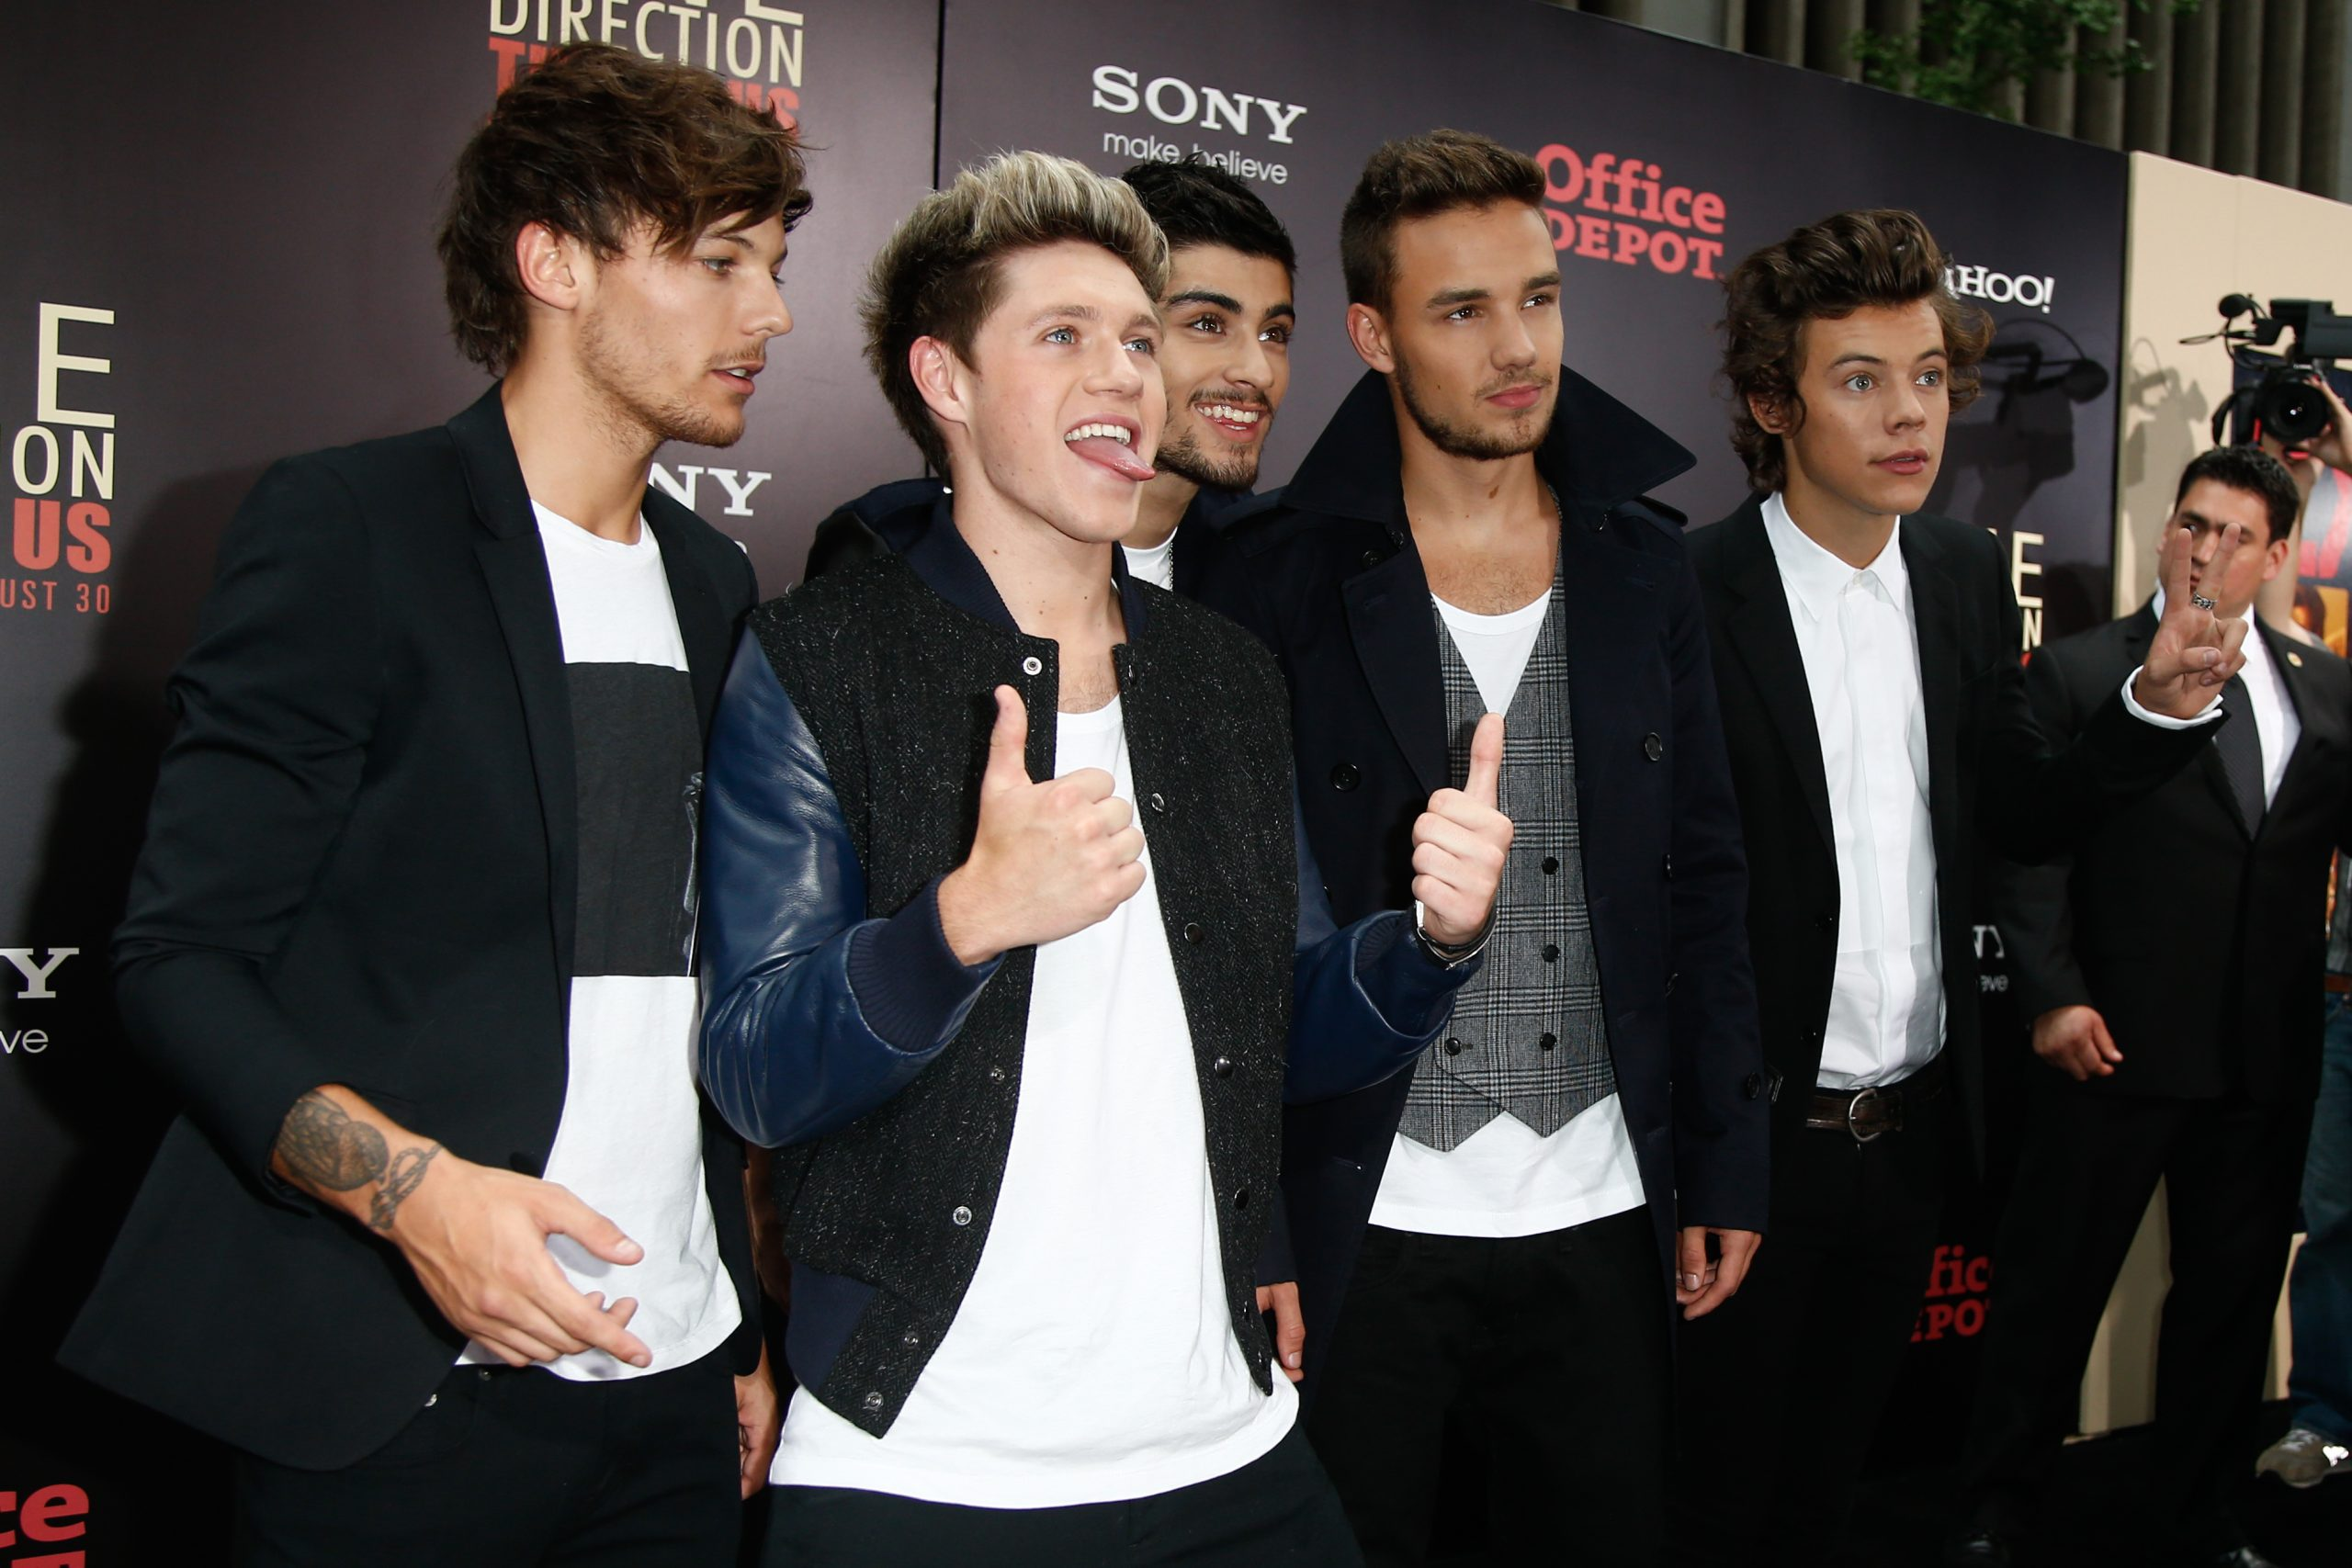 One Direction (Photo: Debby Wong/Shutterstock.com)